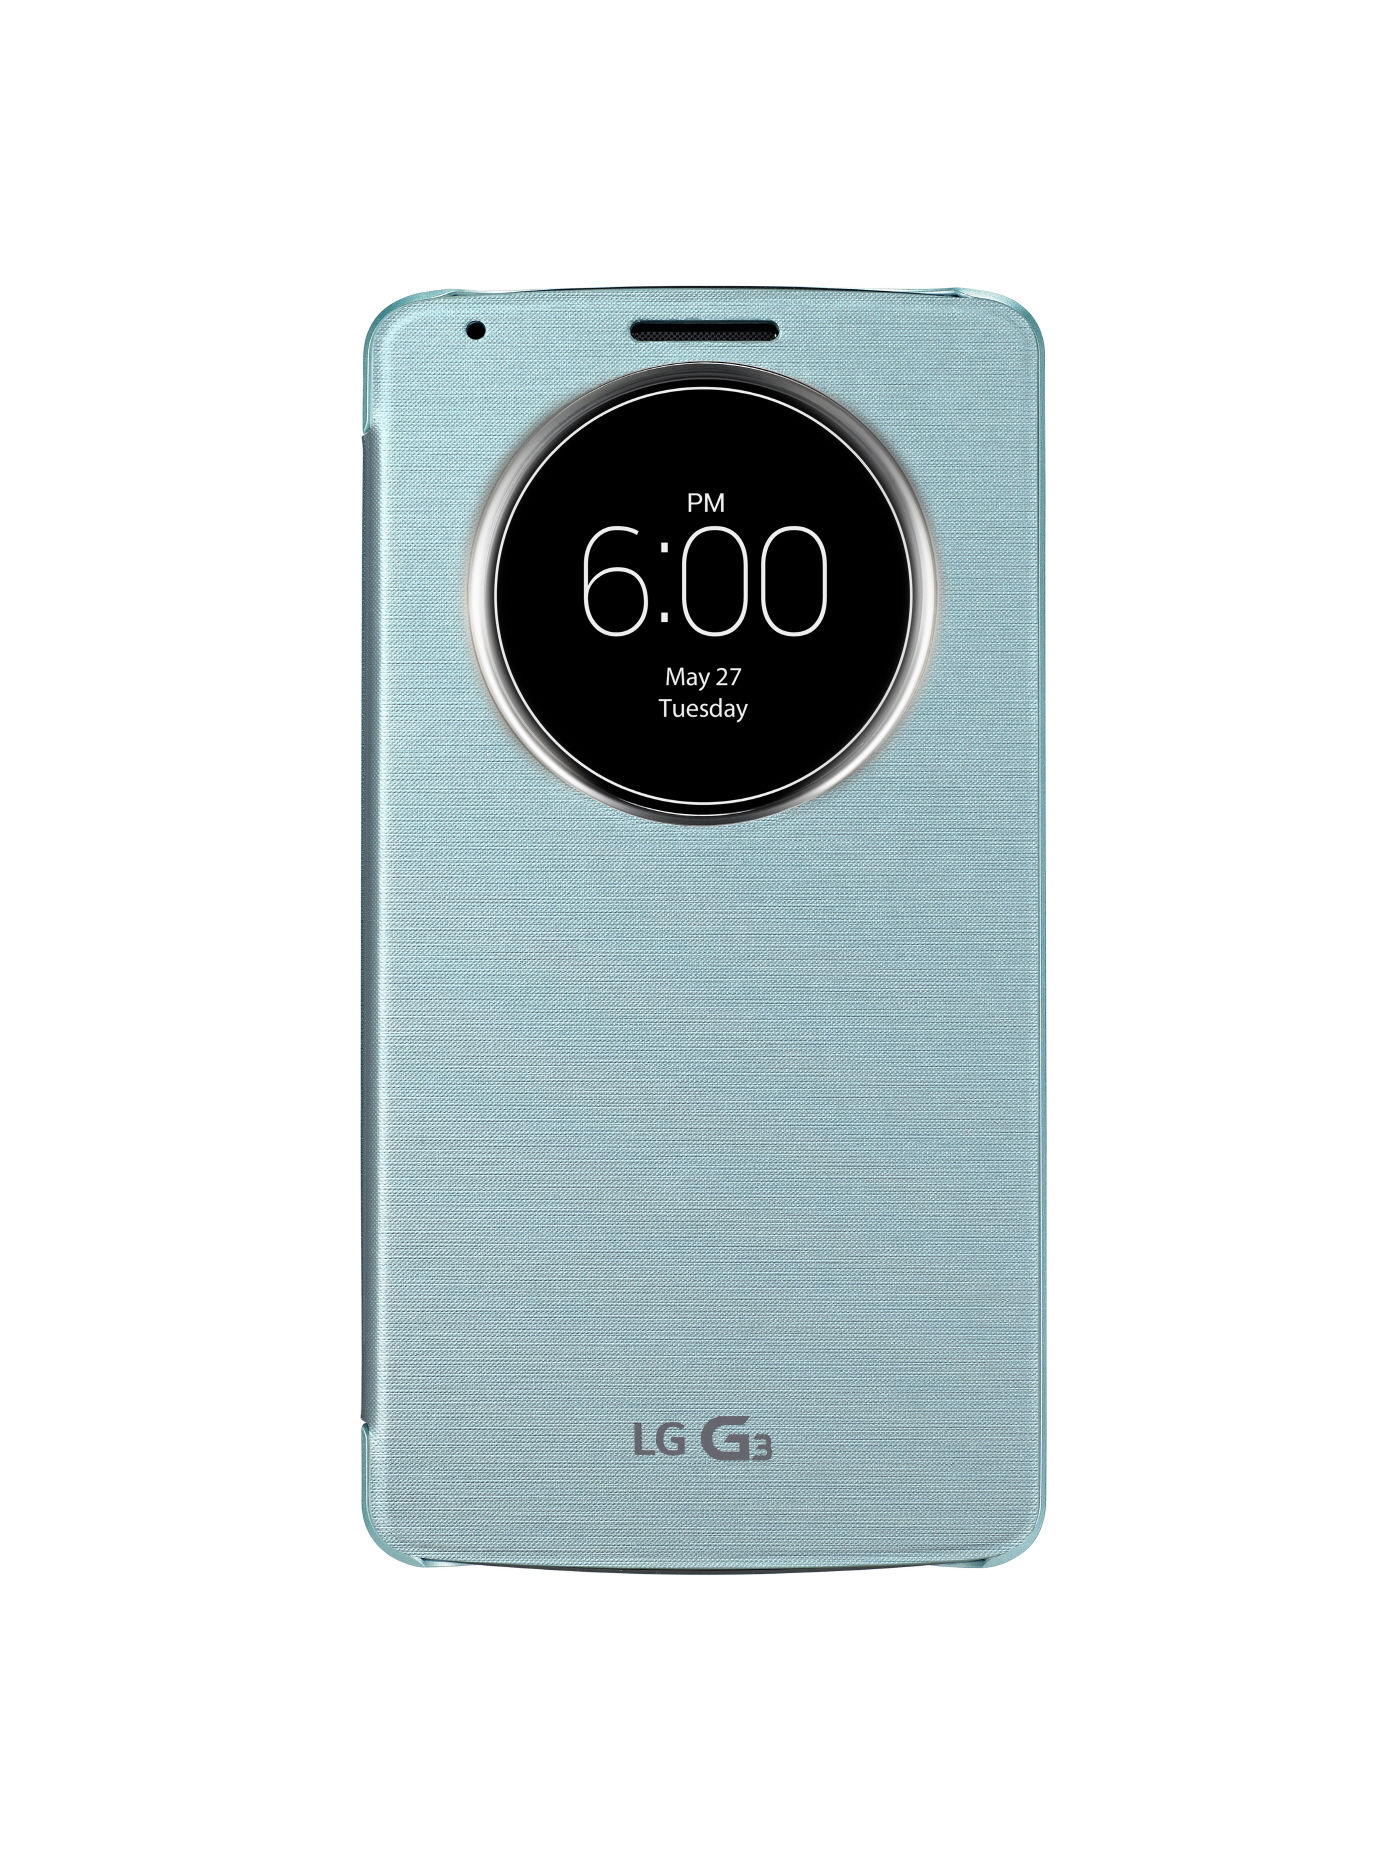 A front view of LG G3 wearing QuickCircleTM case in Aqua Mint color.